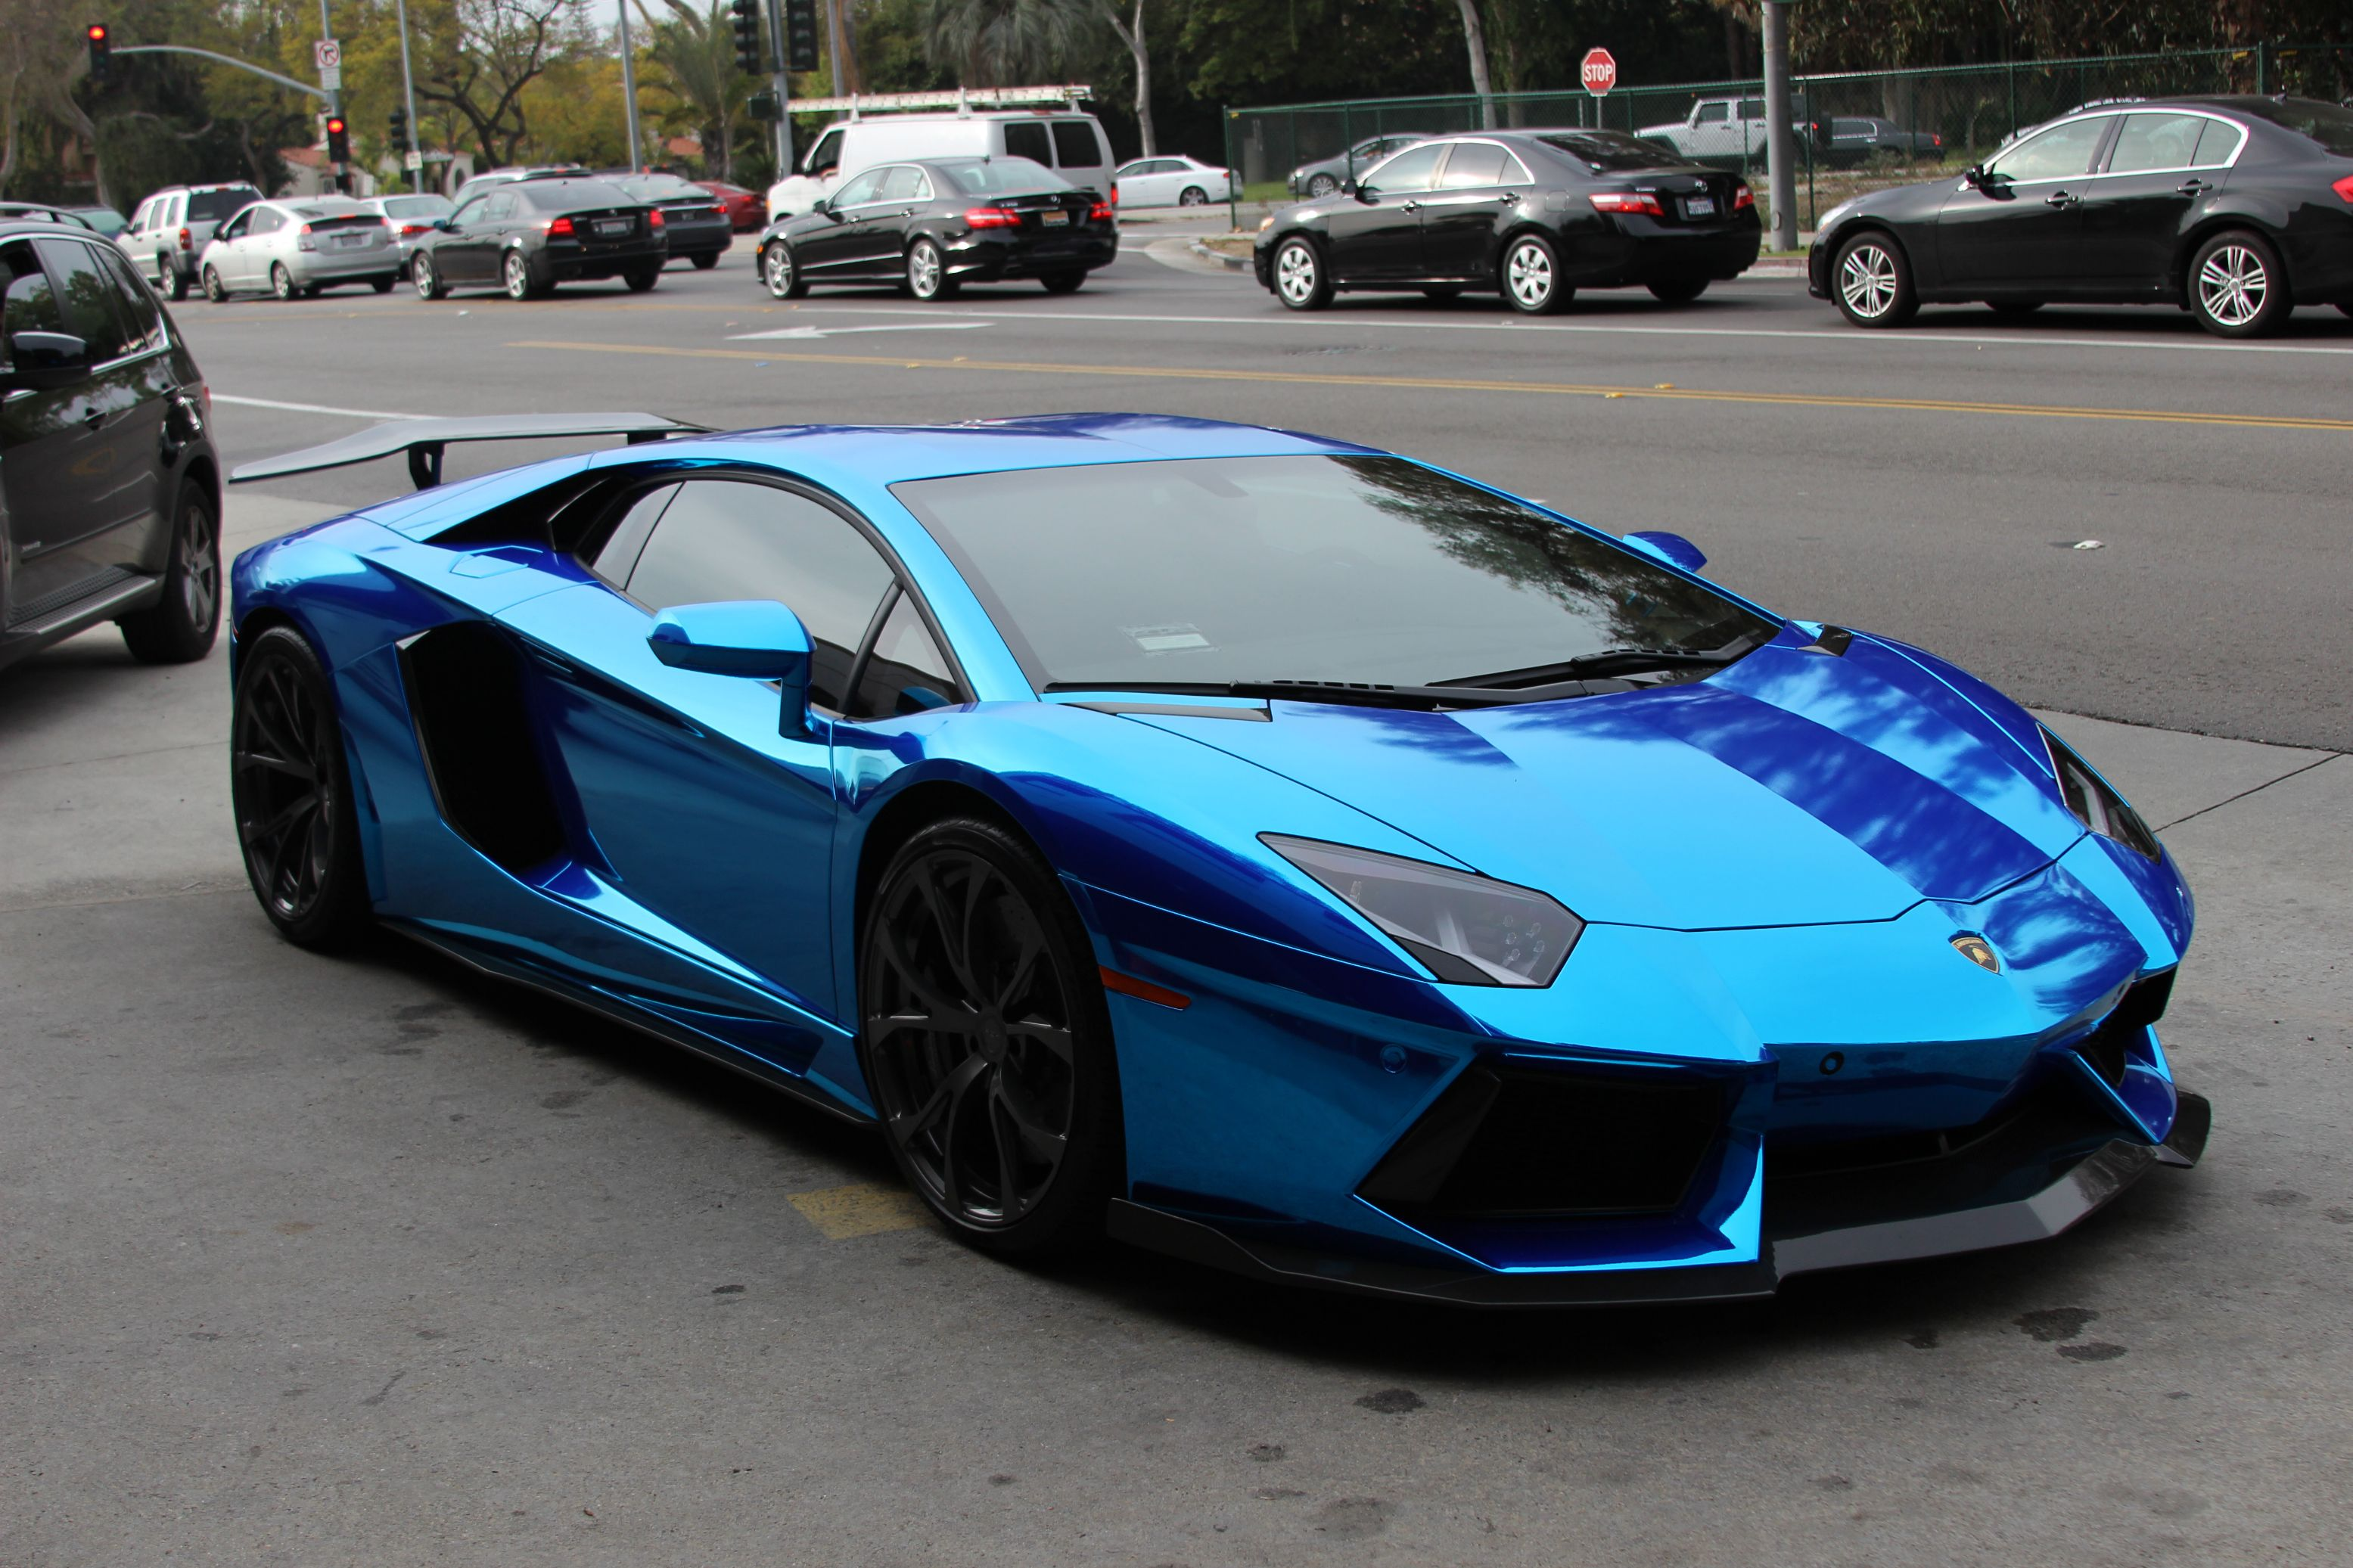 2015 lamborghini aventador high resolution wallpapers - Lamborghini Gallardo Wallpaper Blue